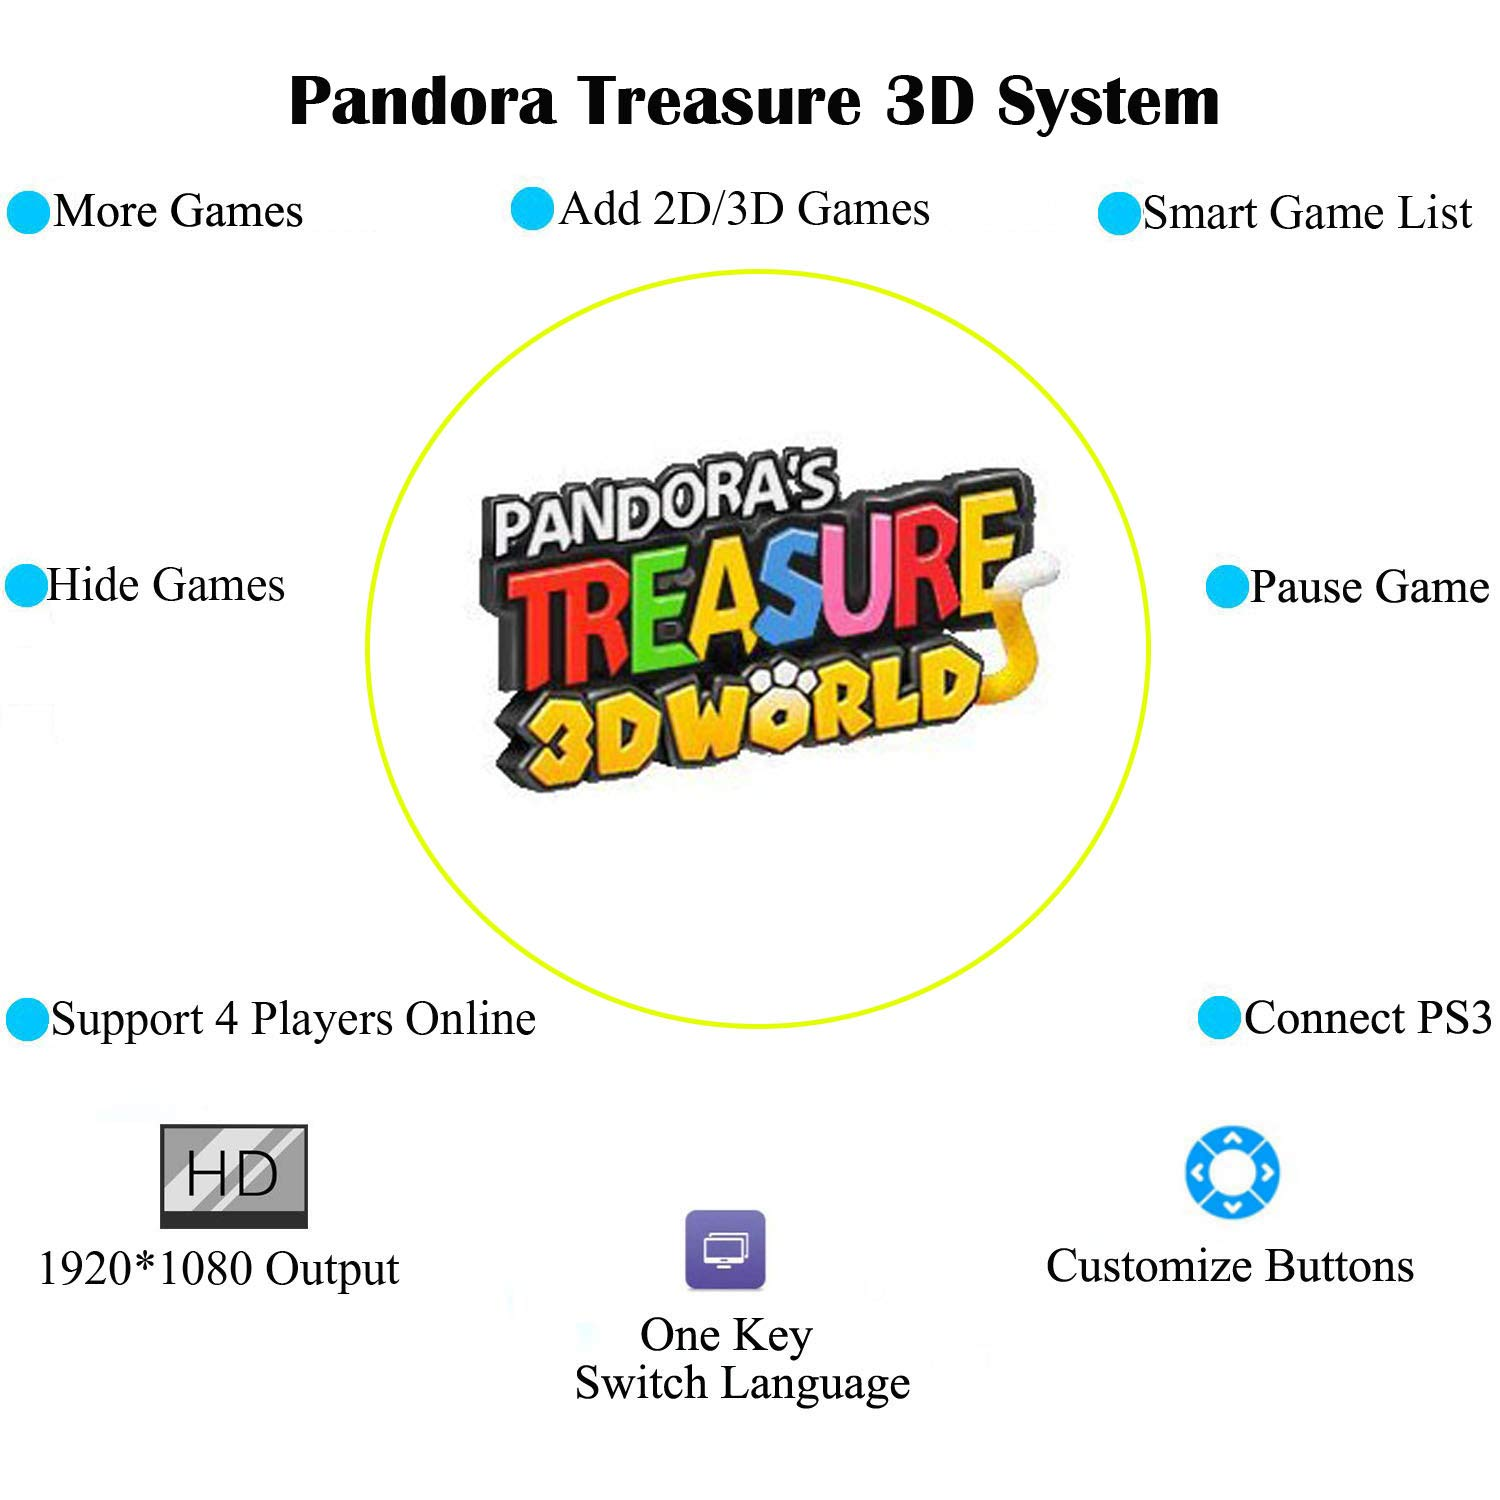 MYMIQEY Pandora Treasure 3D Arcade Game Console | 2200 Retro HD Games | Add More Games | Full HD (1920x1080) Video | Support Multiplayer Online | 2 Player Game Controls | HDMI/VGA/USB/AUX Audio Output by MYMIQEY (Image #2)